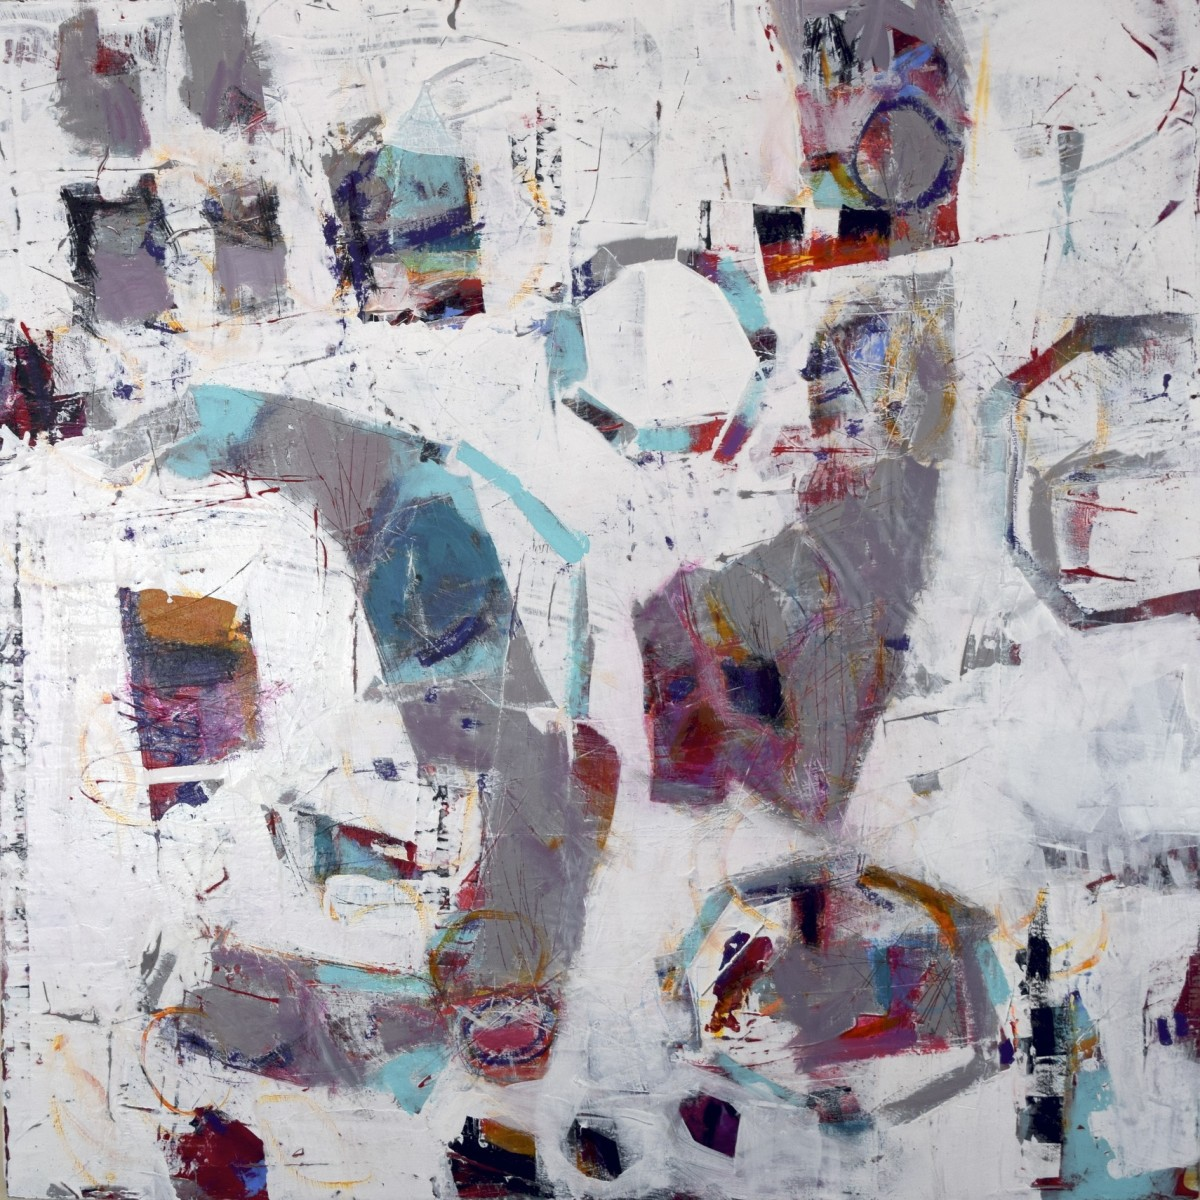 Pieces Make Up the Whole by Linda Fischer